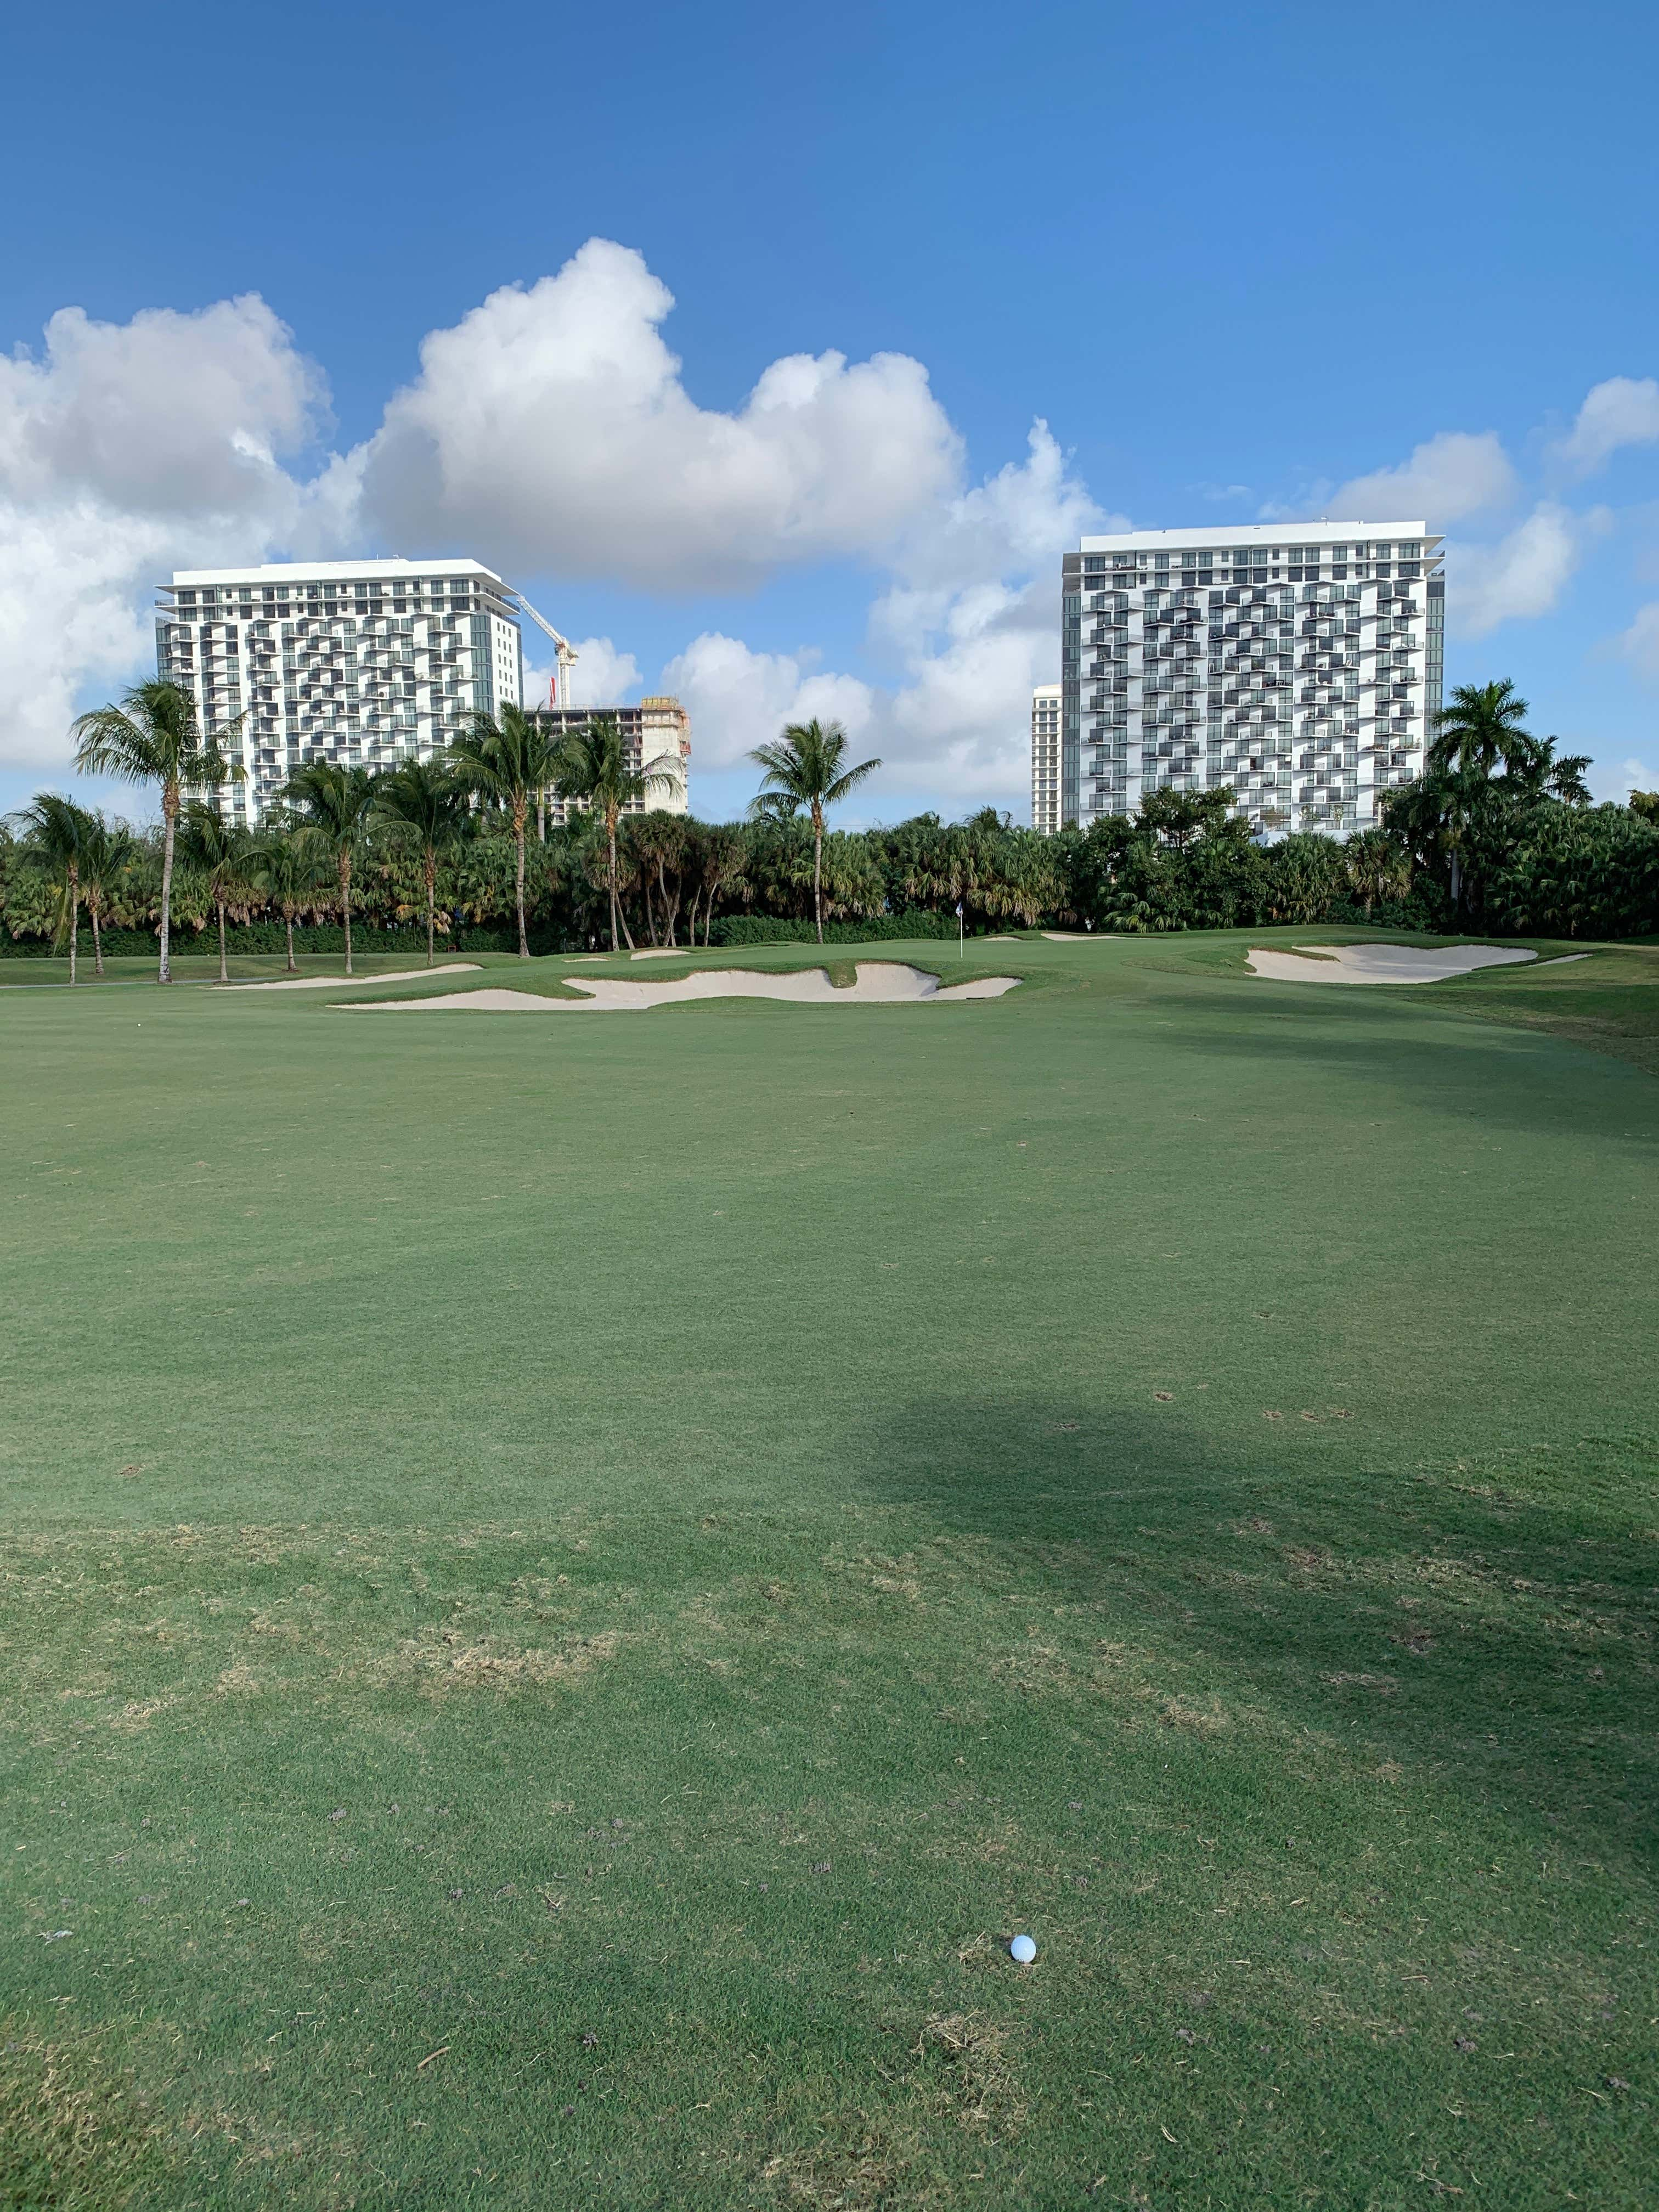 d9ad7ae2673b69 Riggs vs The Blue Monster  Trump Doral - Barstool Sports